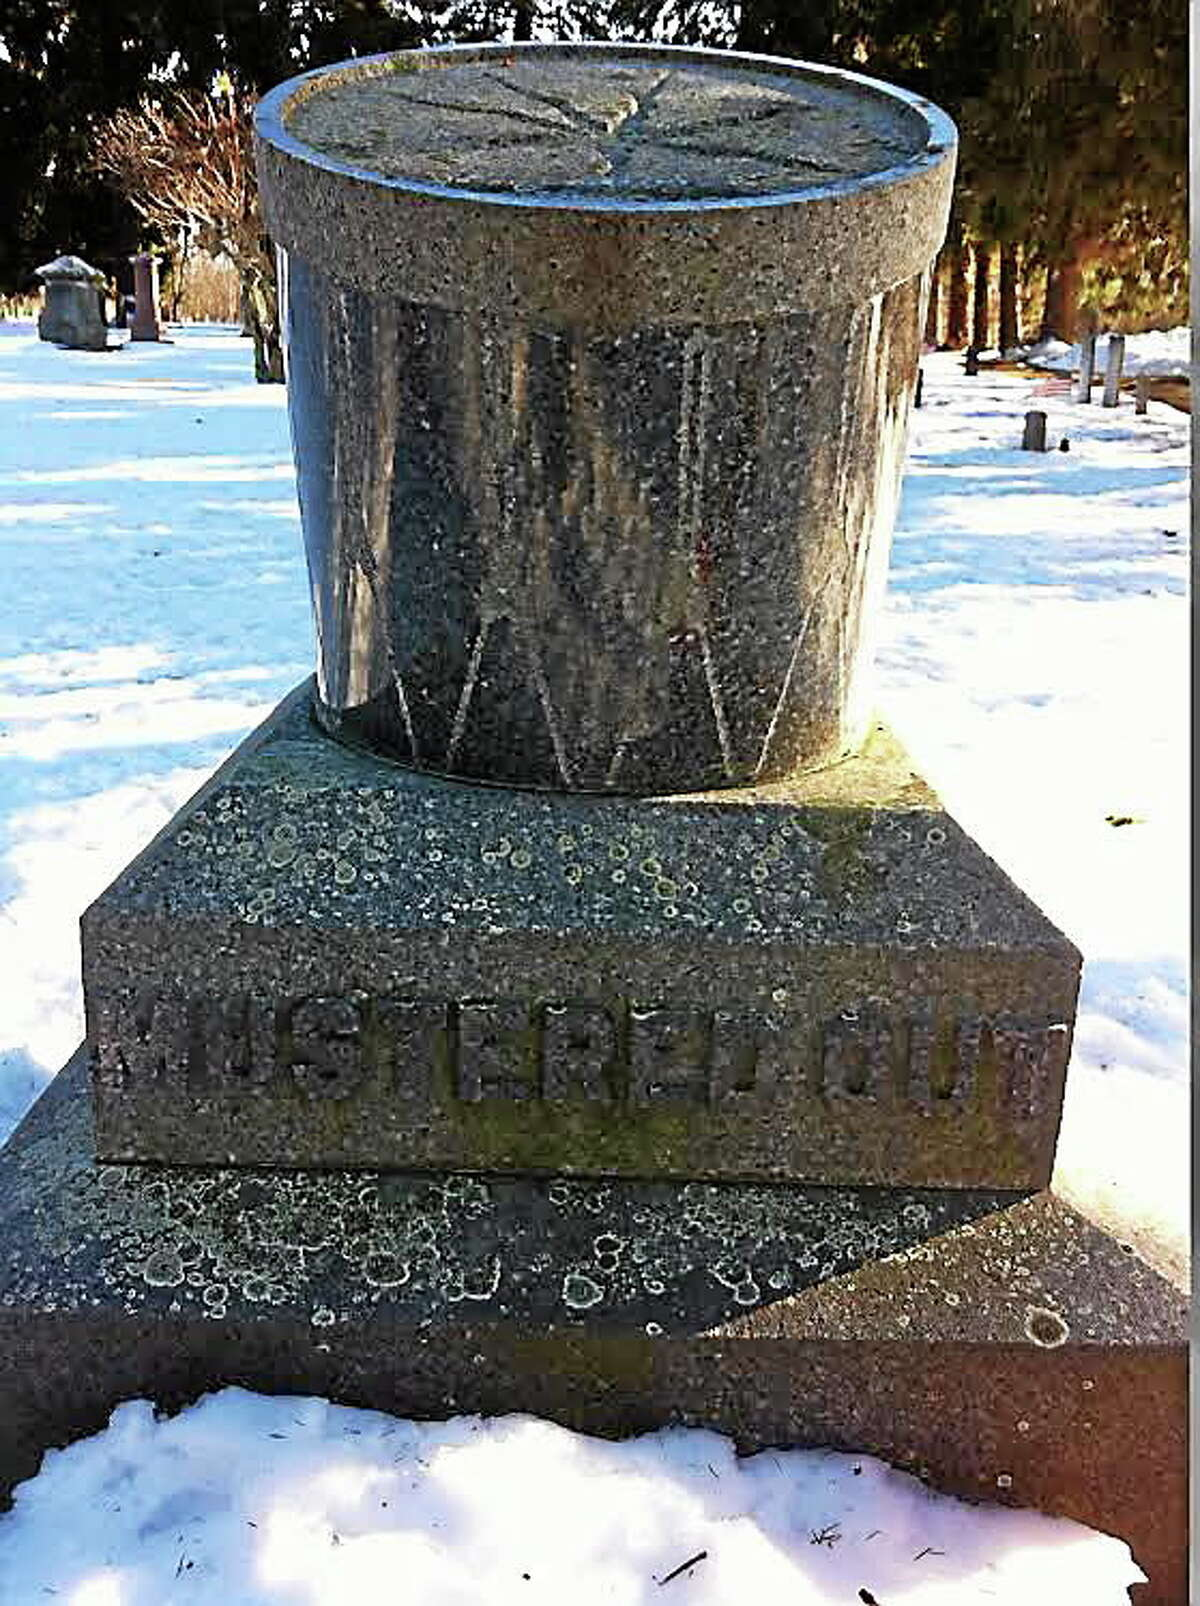 This Civil War monument in Soldiers' Lot, West Cemetery, Litchfield, is a granite drum of the type used in military bands, mounted at an angle on a granite base.